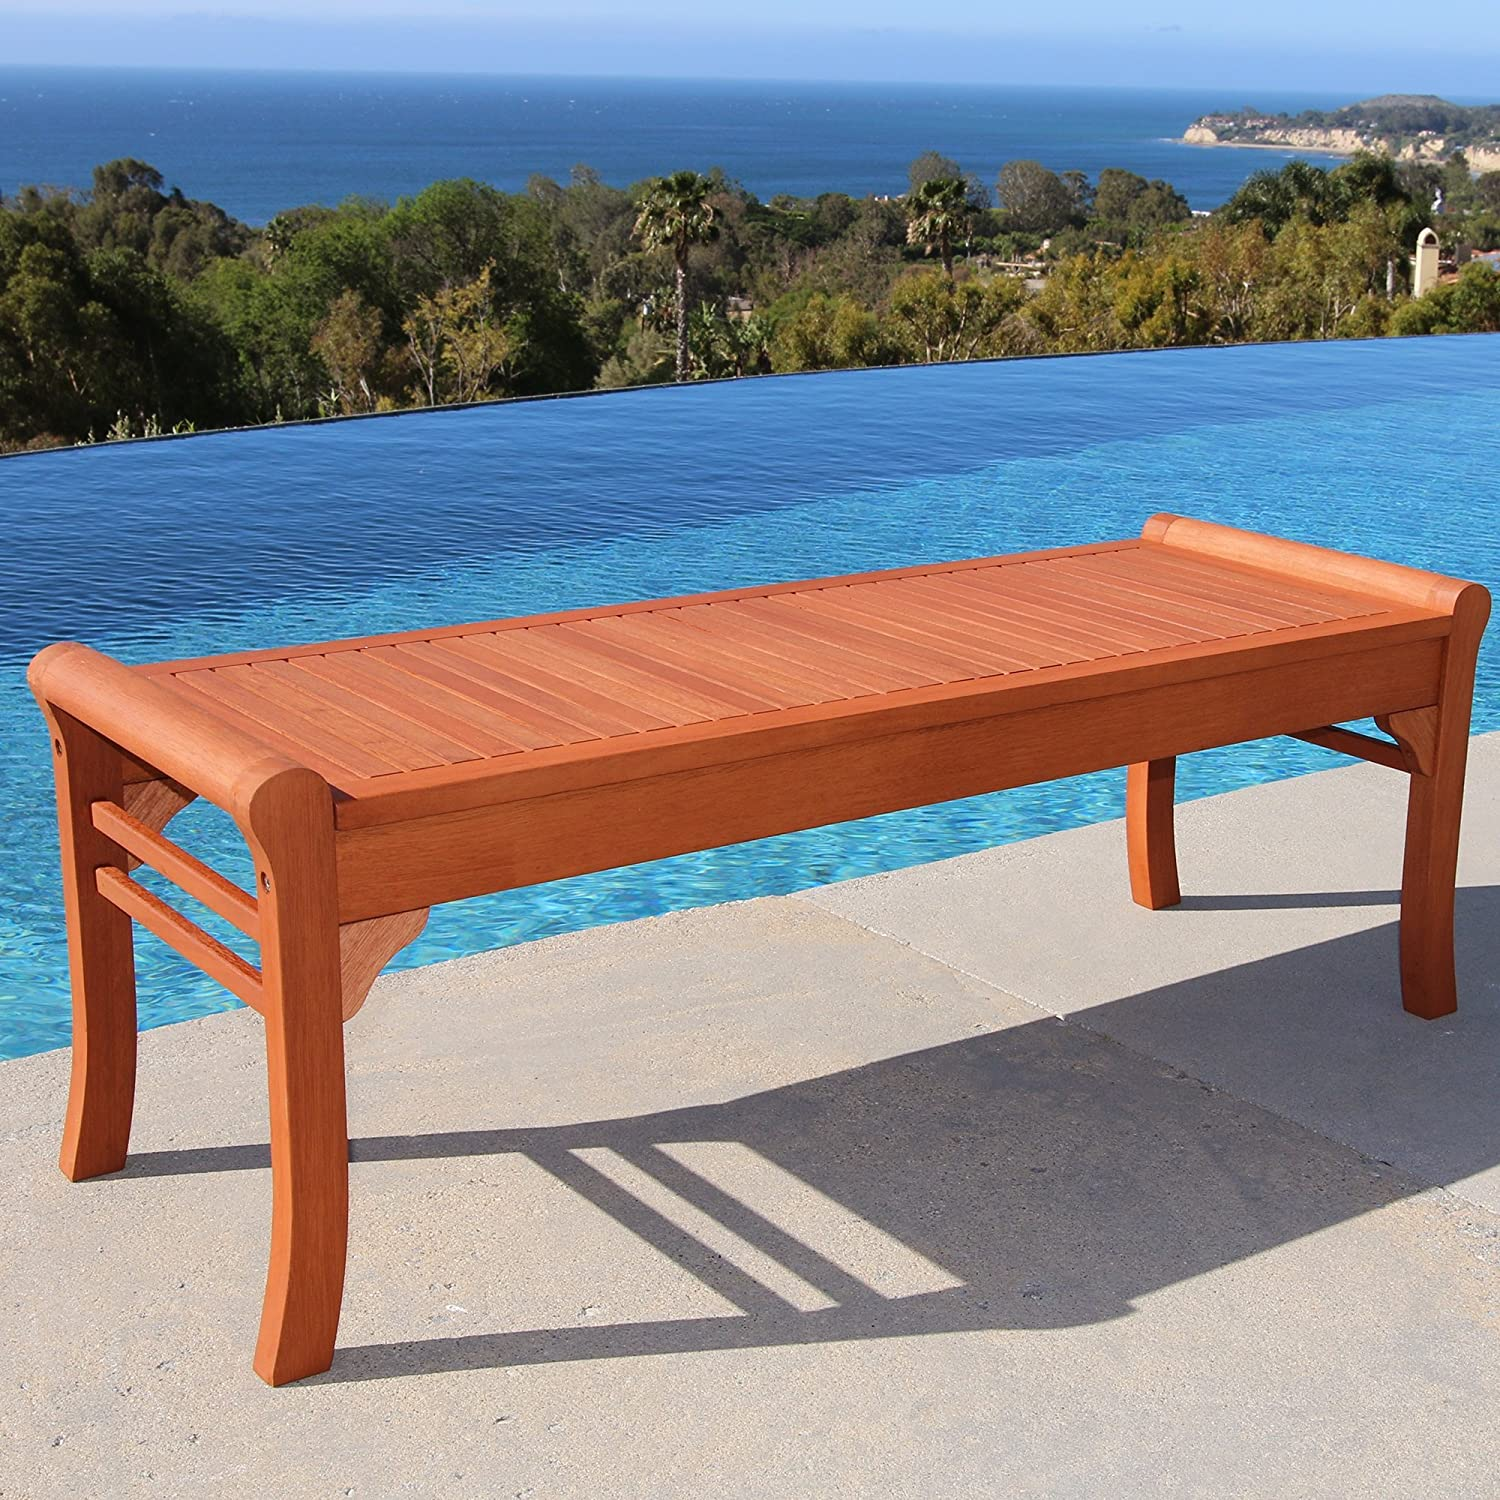 VIFAH Wood Bench ONLY $60.99 S...